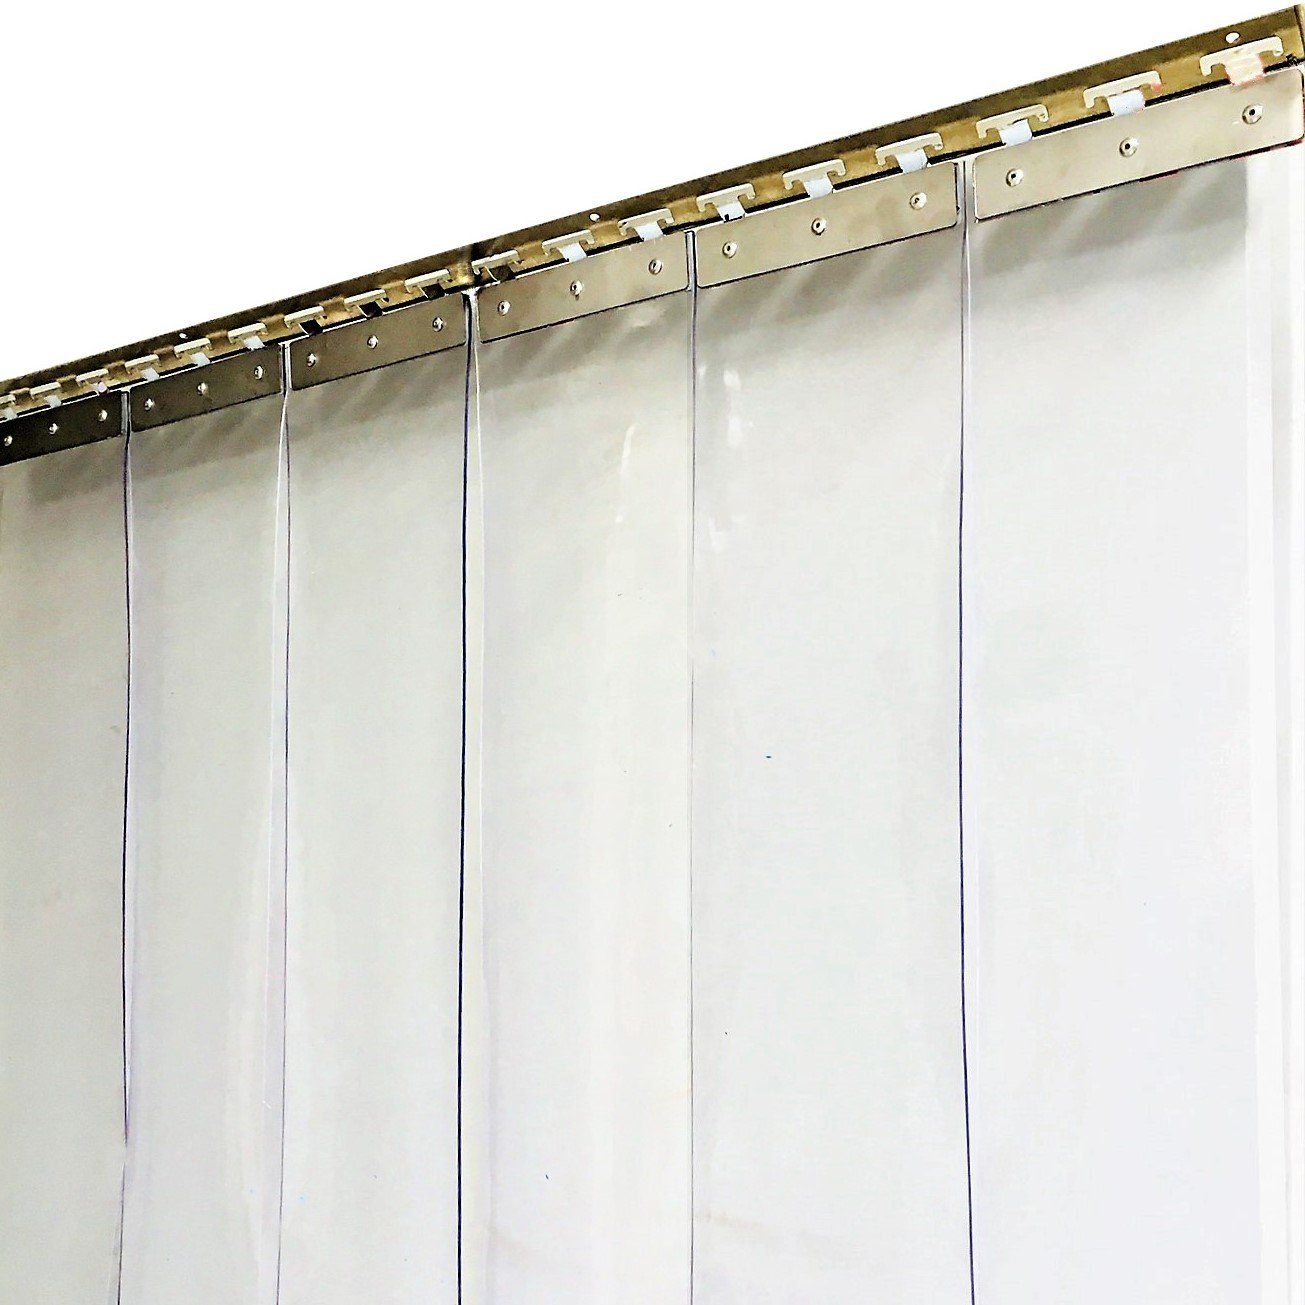 PVC Plastic Door Strips Curtain 2000 X 900mm